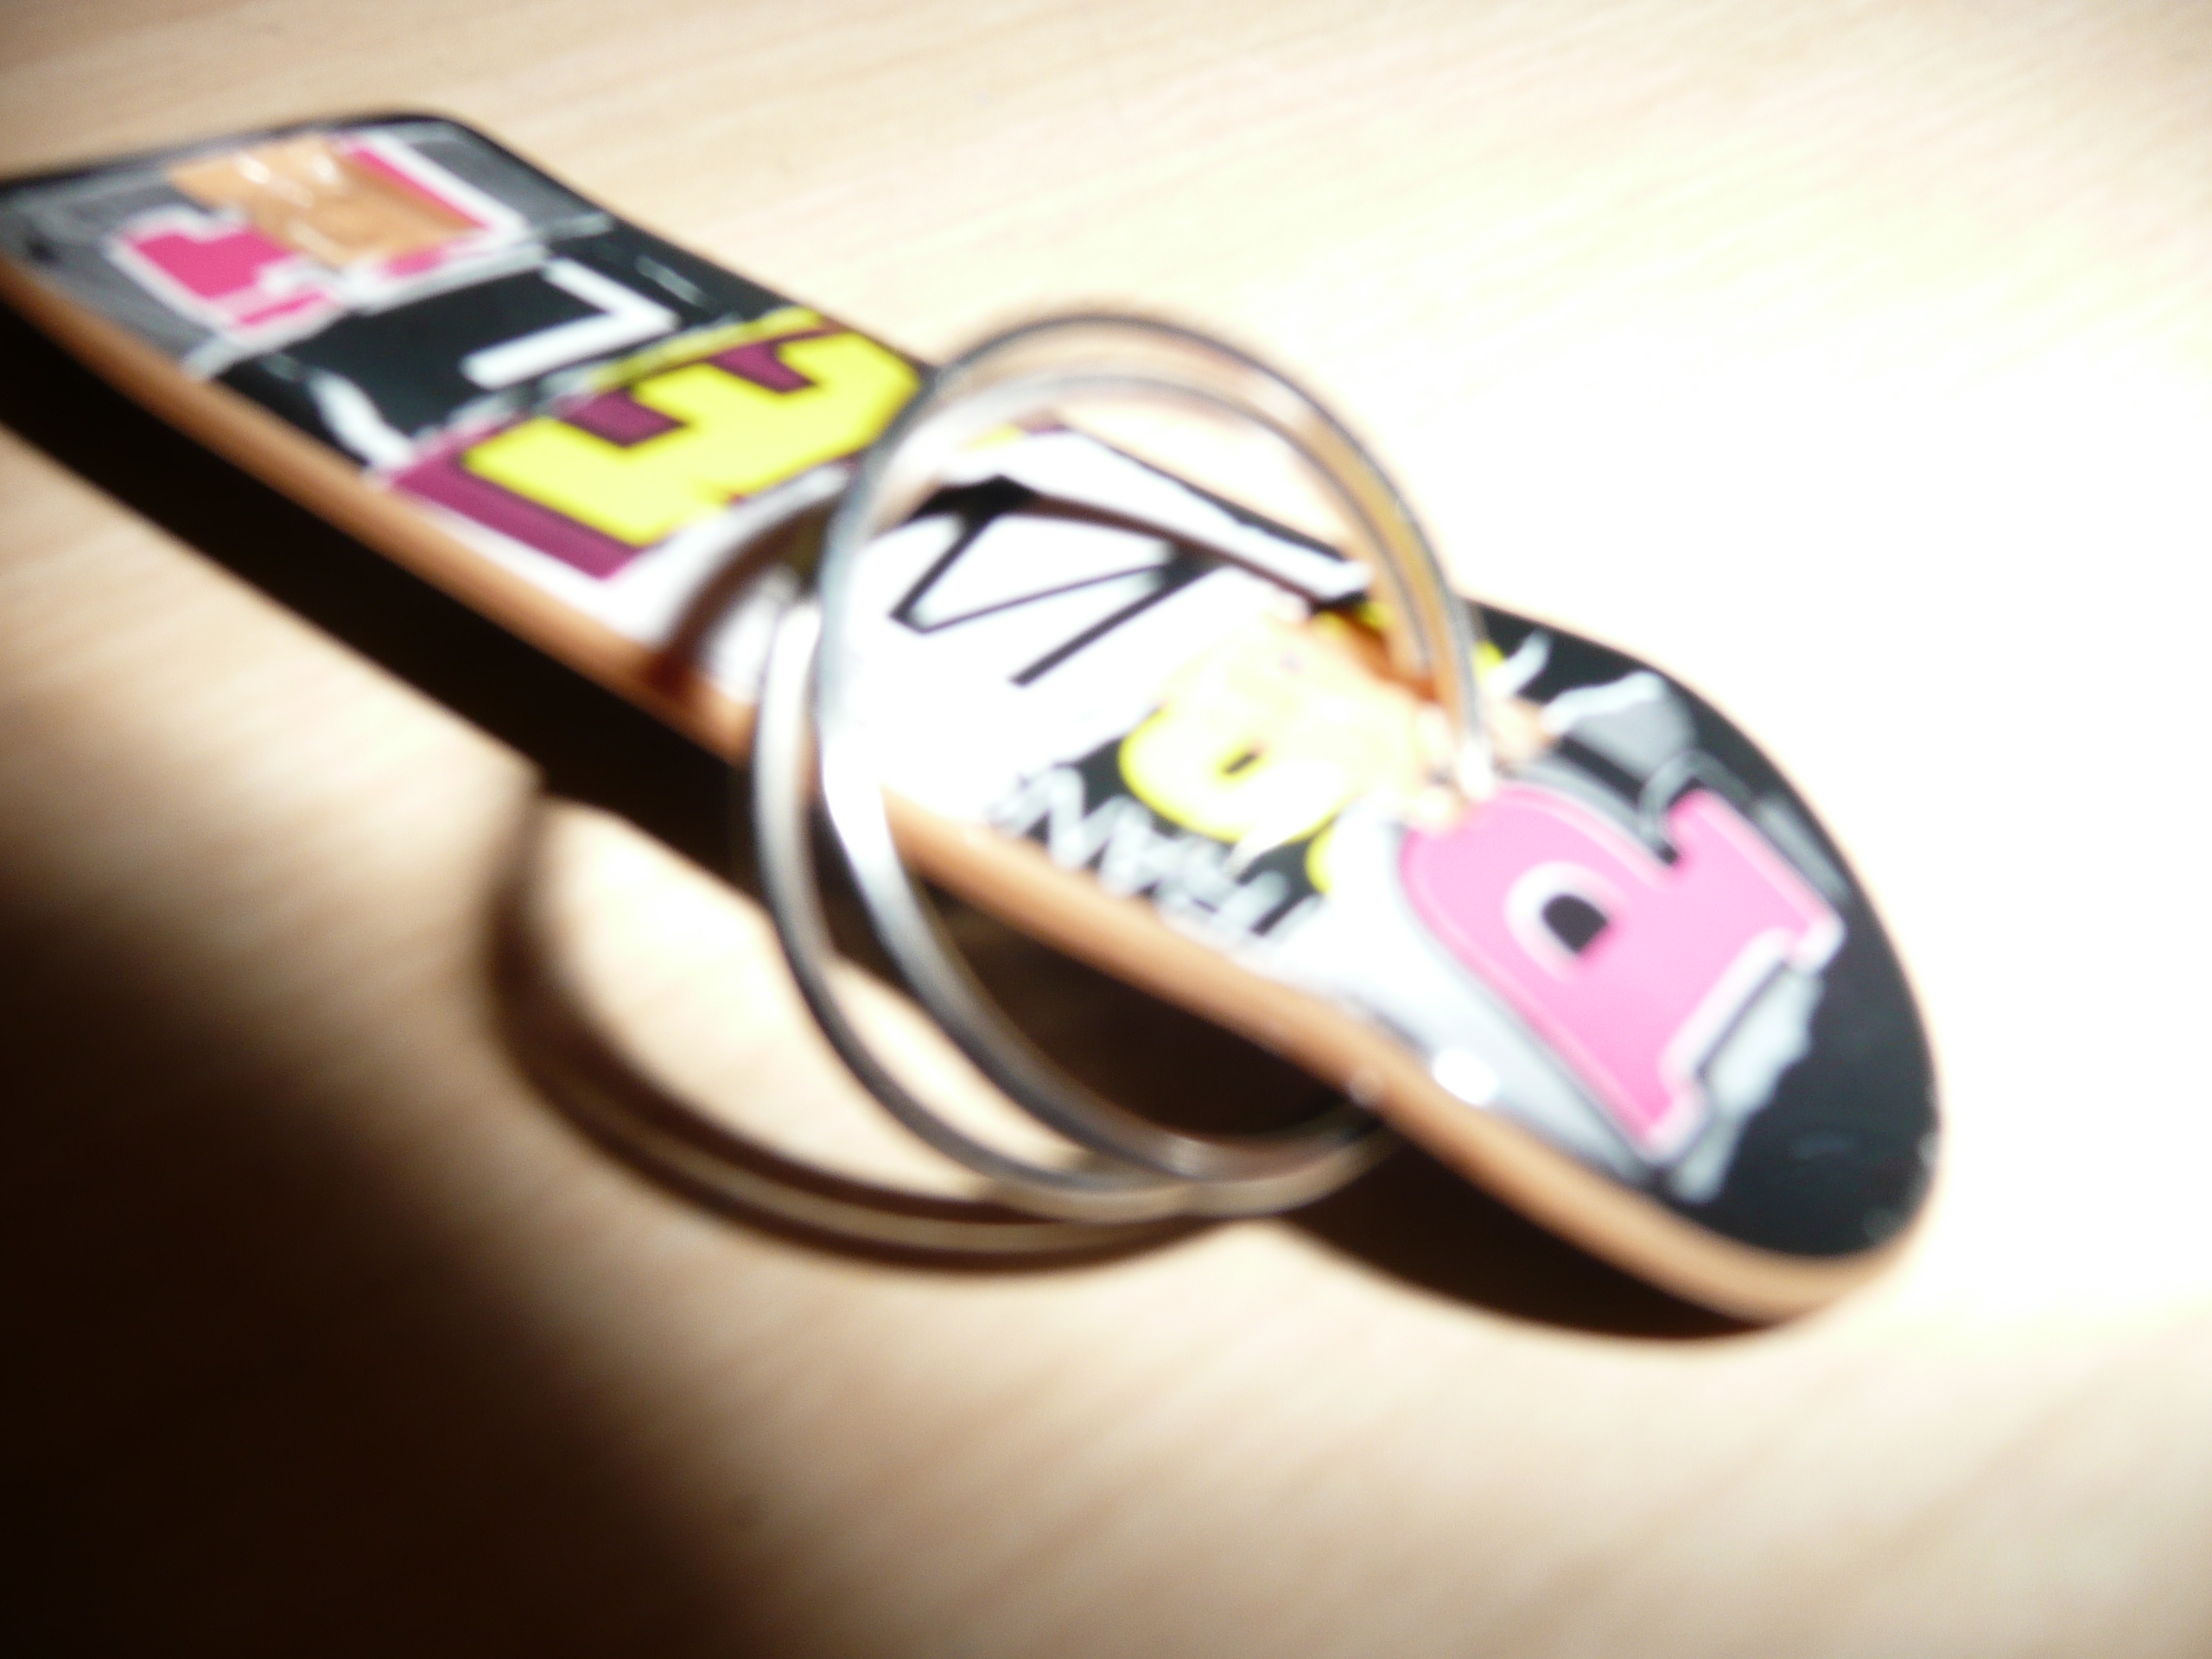 Picture of INSERT the Keychain